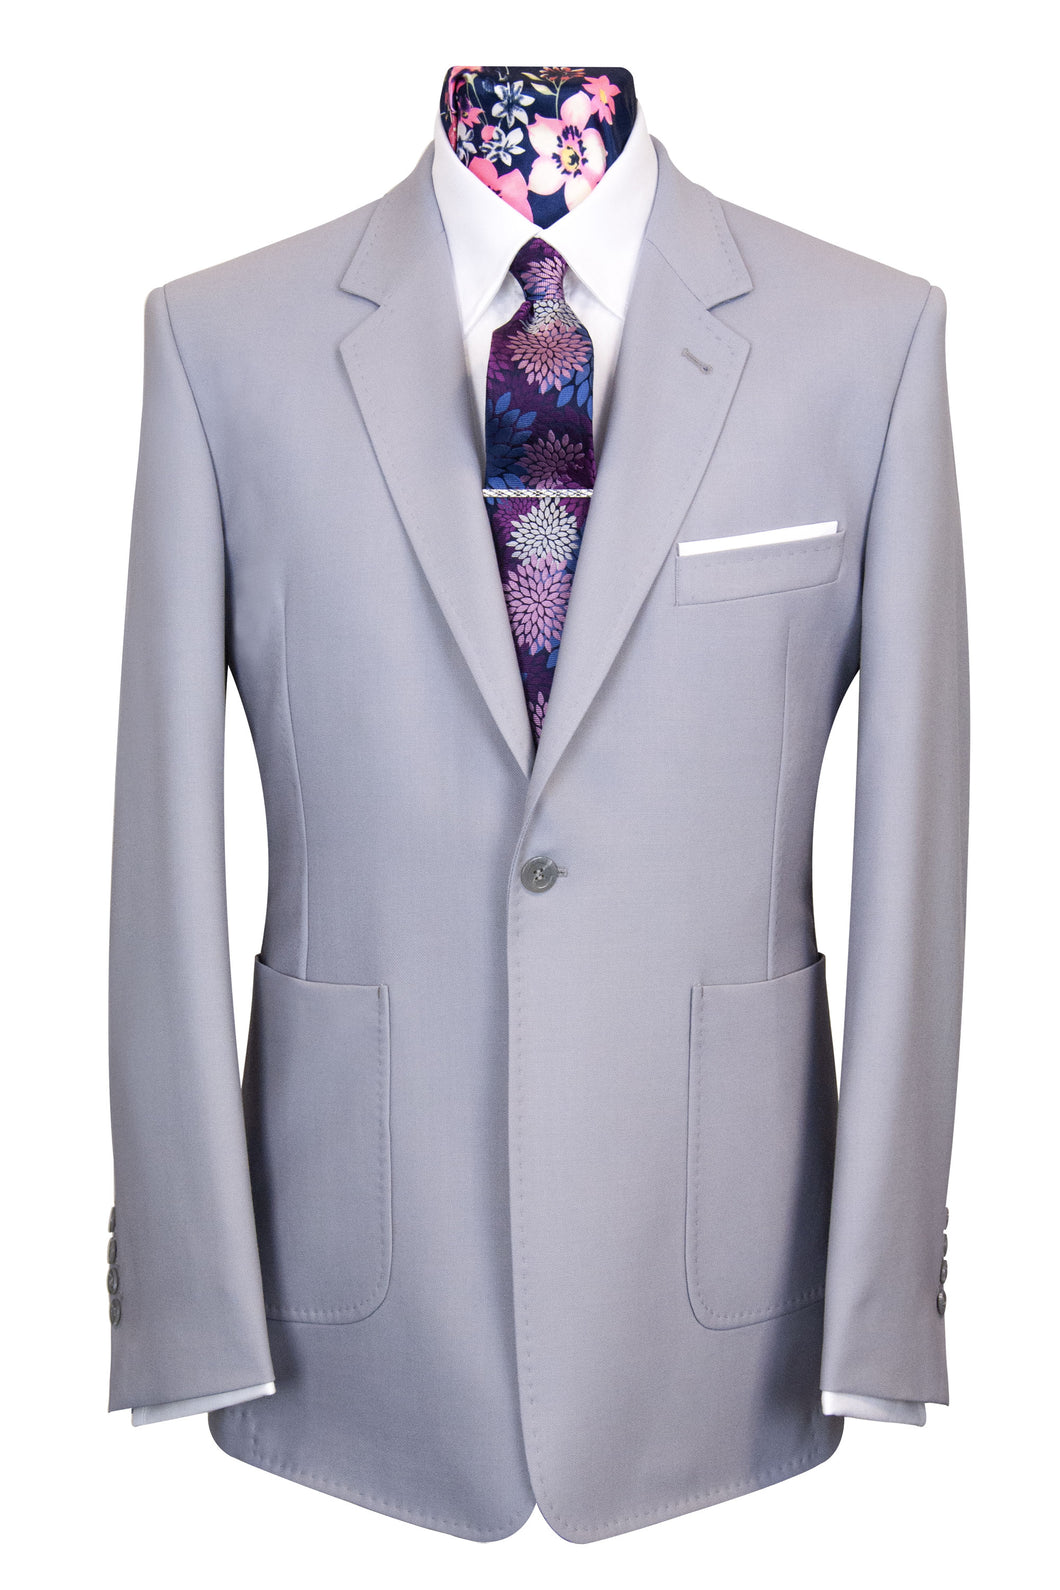 William Hunt Savile Row | The Dalton Pastel Lilac Rib Suit